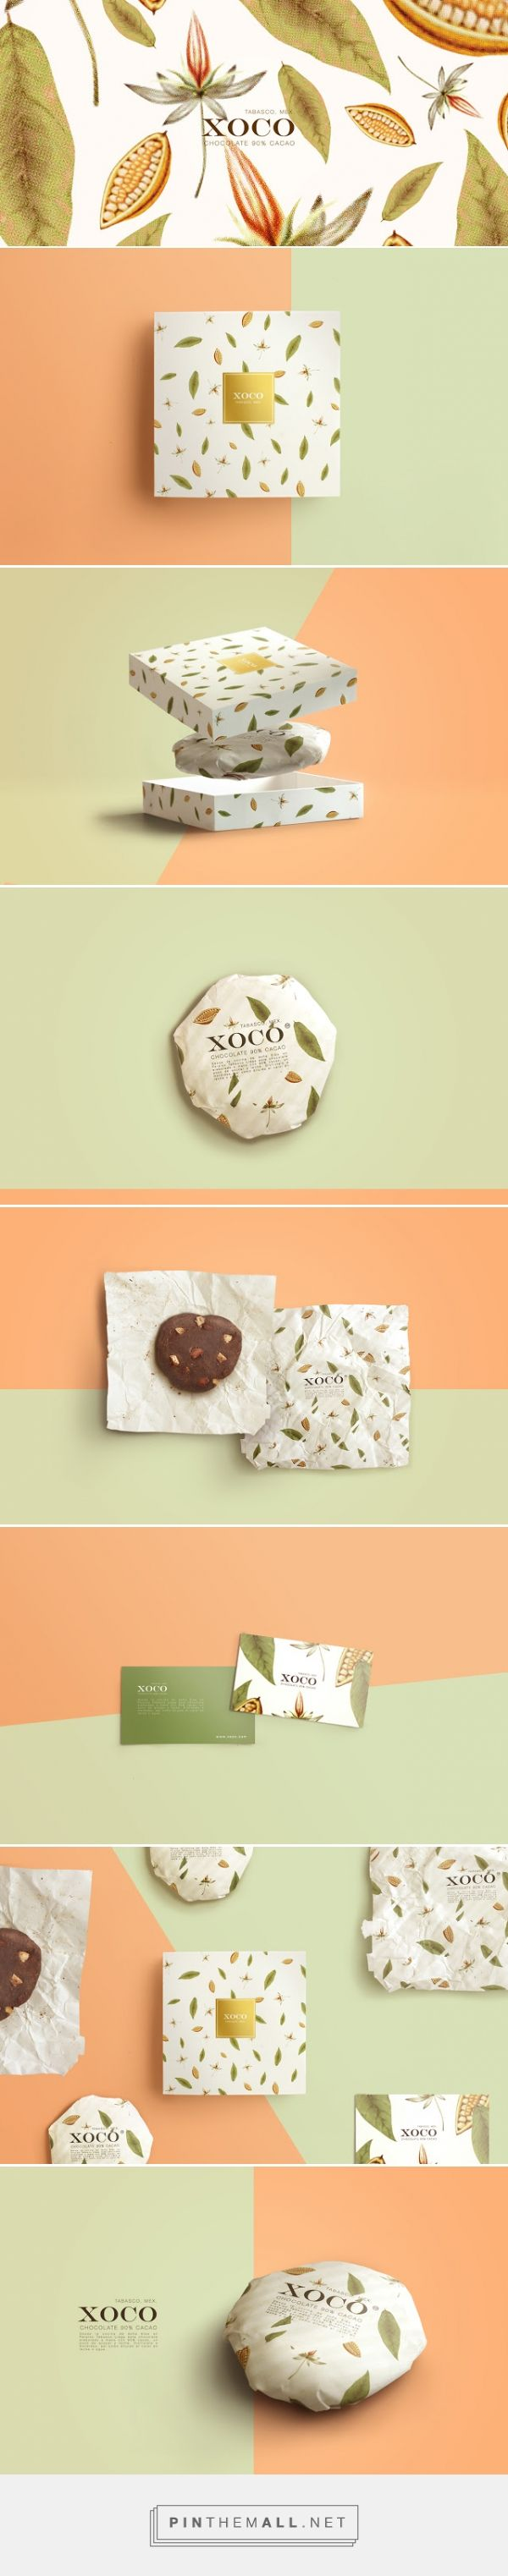 XOCO - #Mexican Craft #Chocolate #packaging designed by TORO PINTO - http://www.packagingoftheworld.com/2015/05/xoco-mexican-craft-chocolate.html